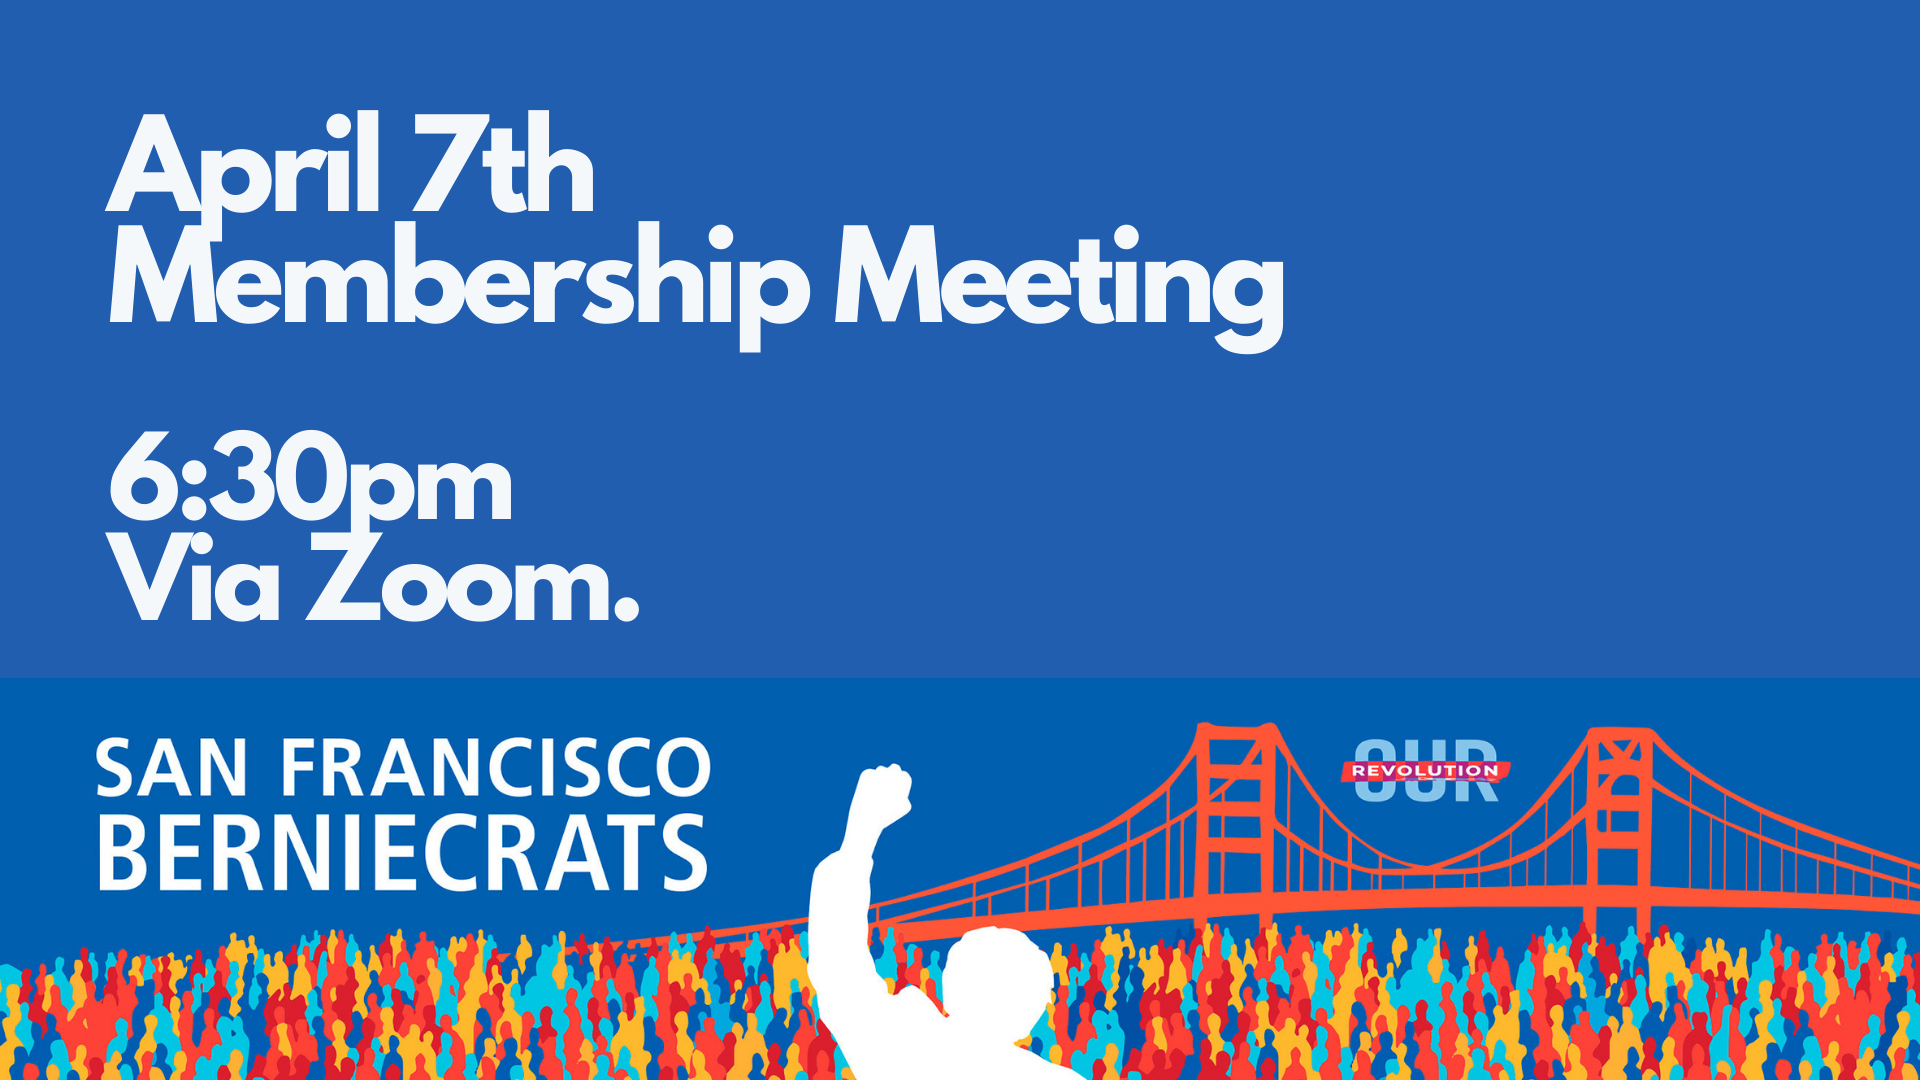 SF Berniecrats membership meeting @ Online via Zoom